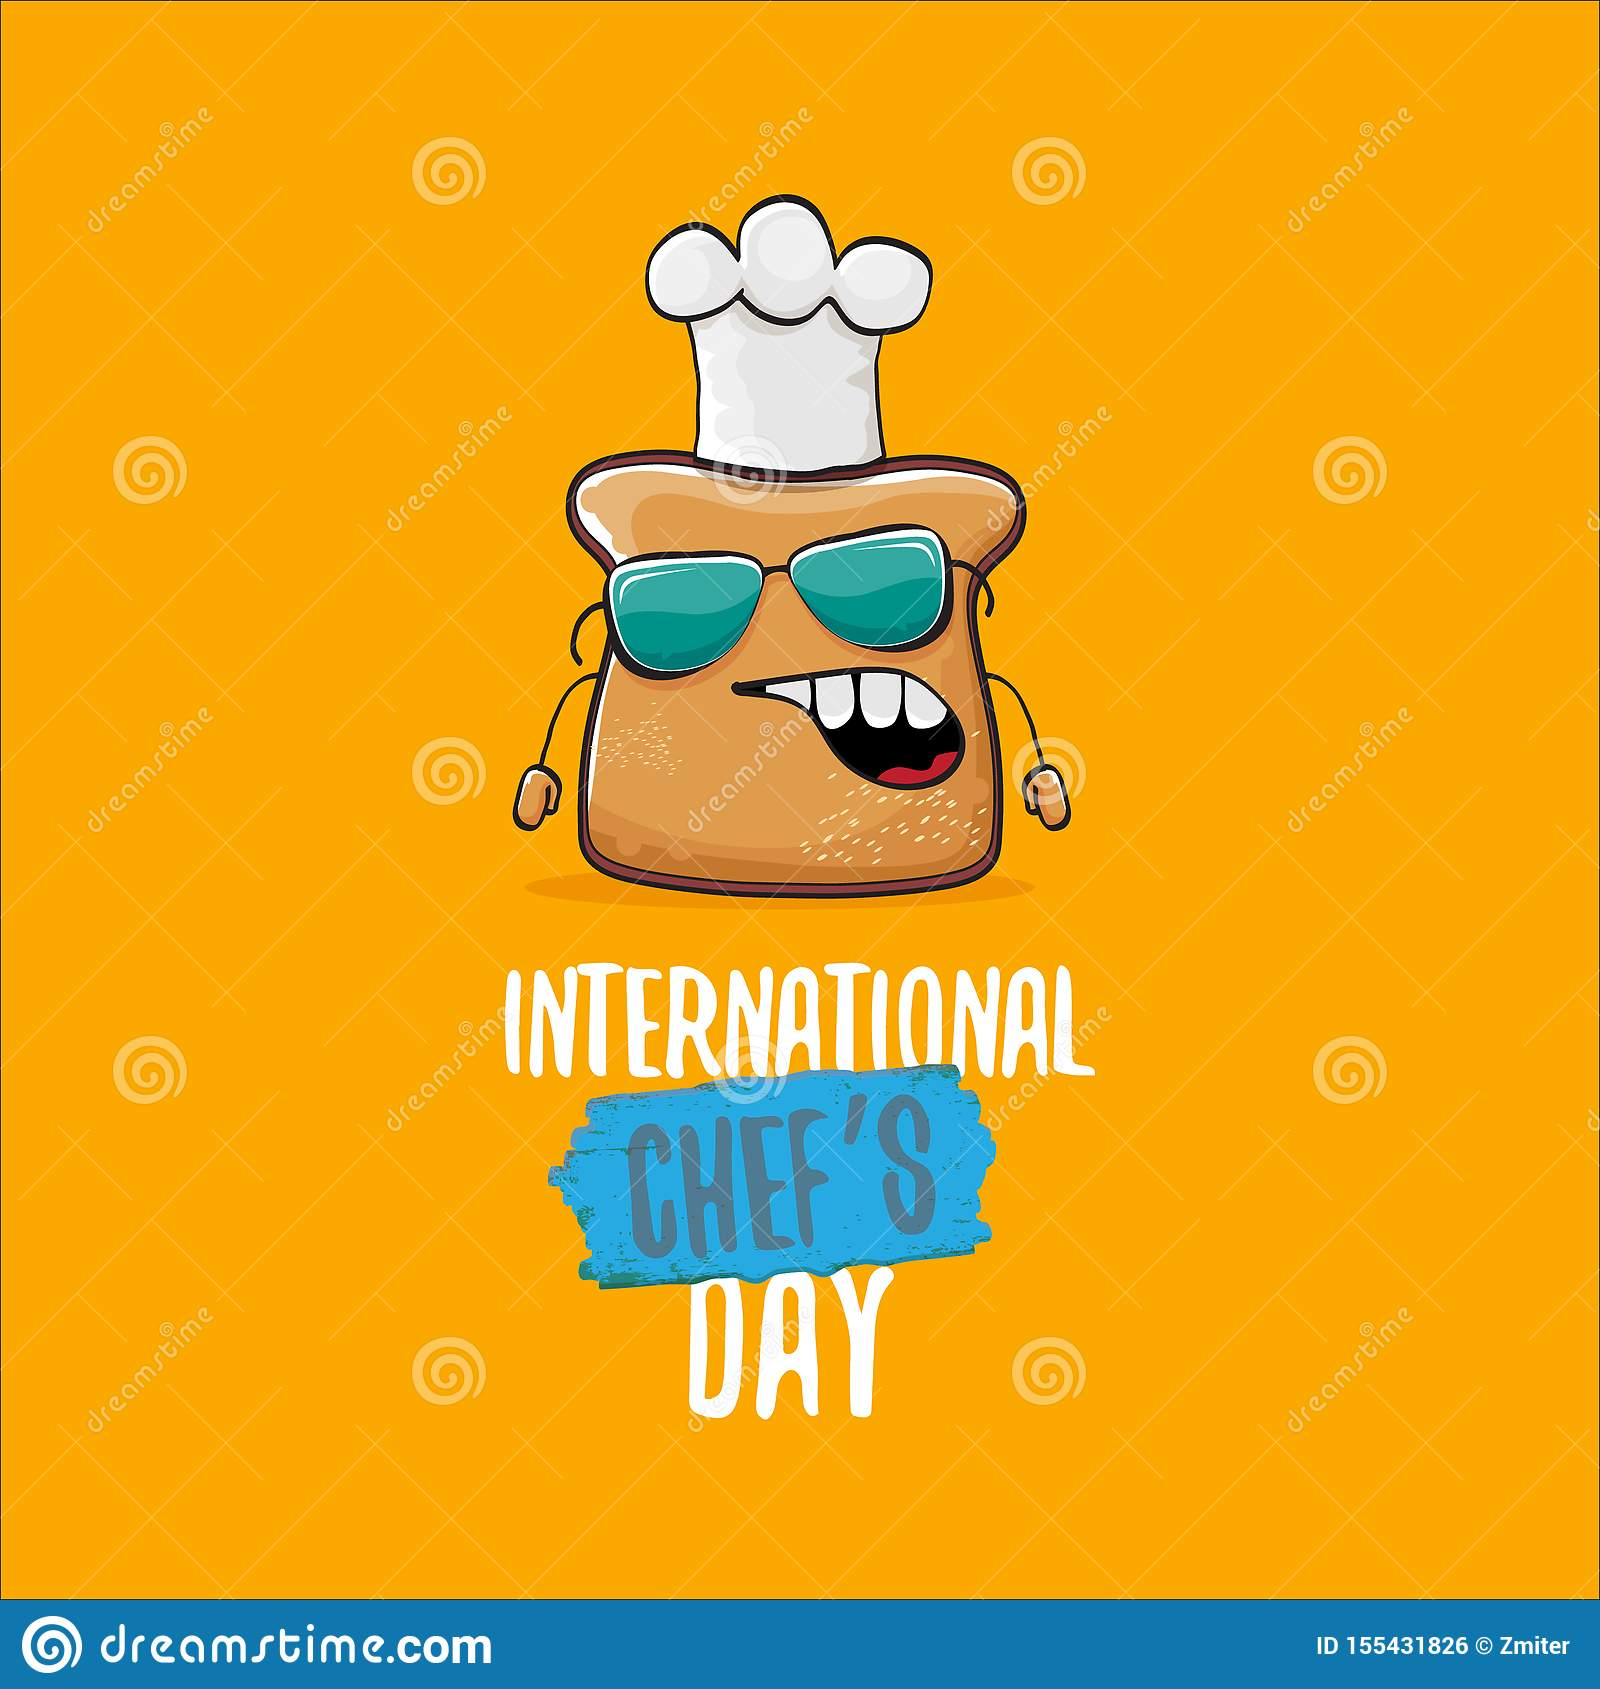 International chef day greeting card or banner with vector funny cartoon chef bread with cheaf hat isolated on orange